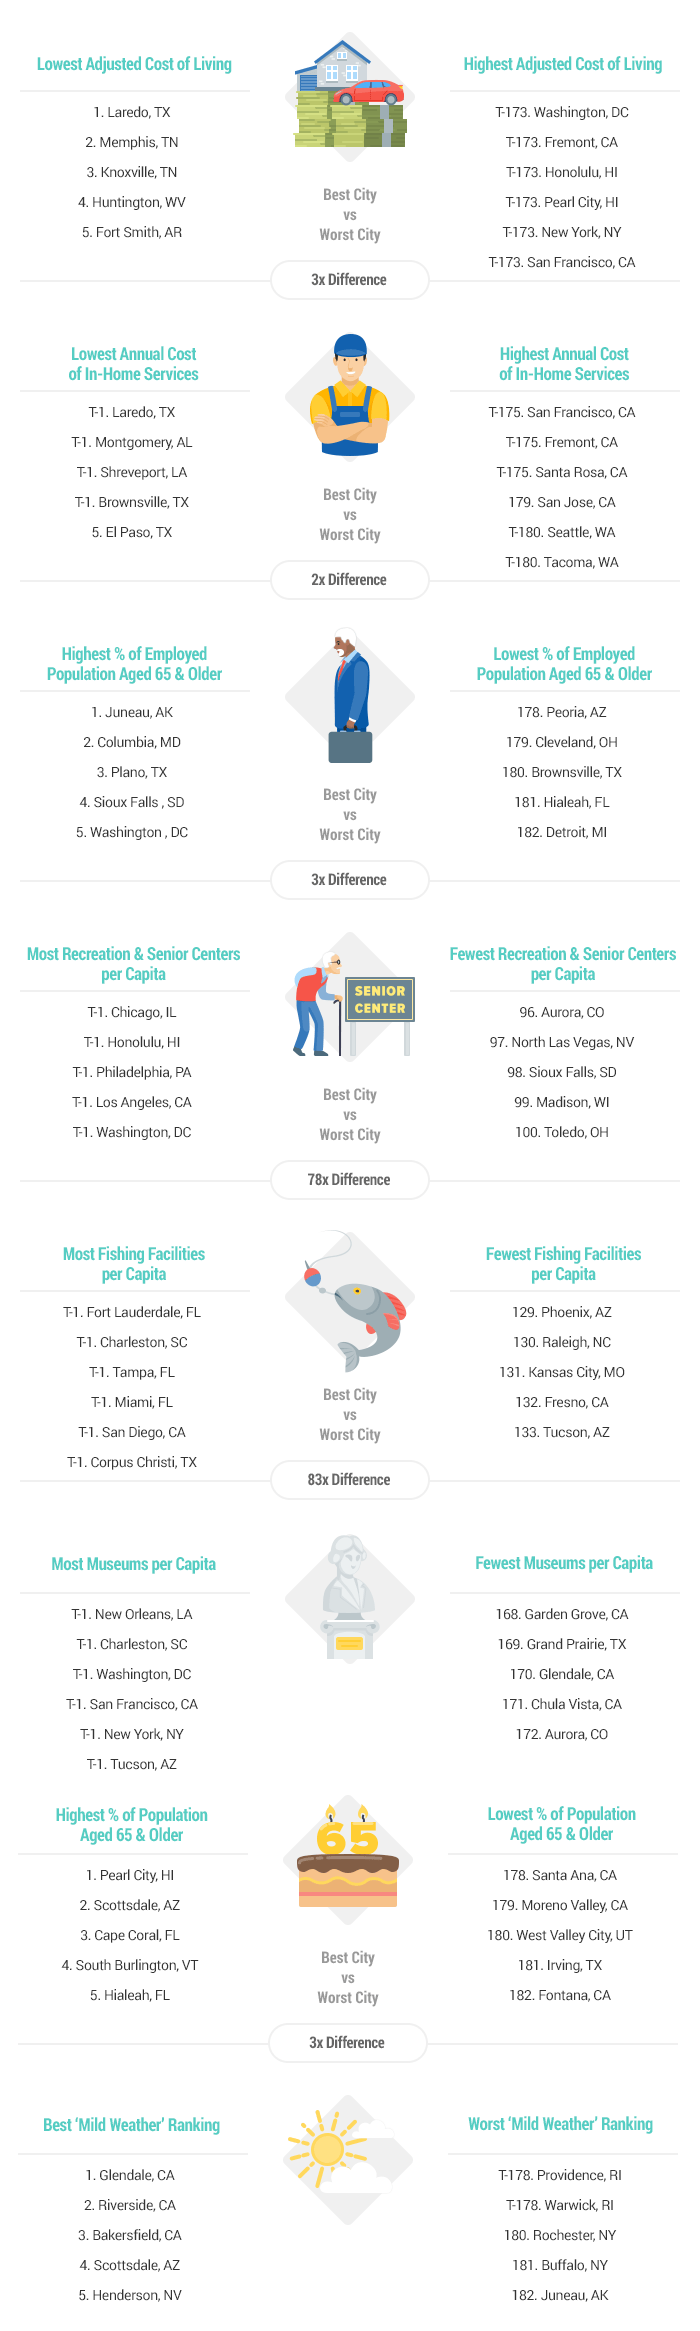 2019's Best & Worst Places to Retire